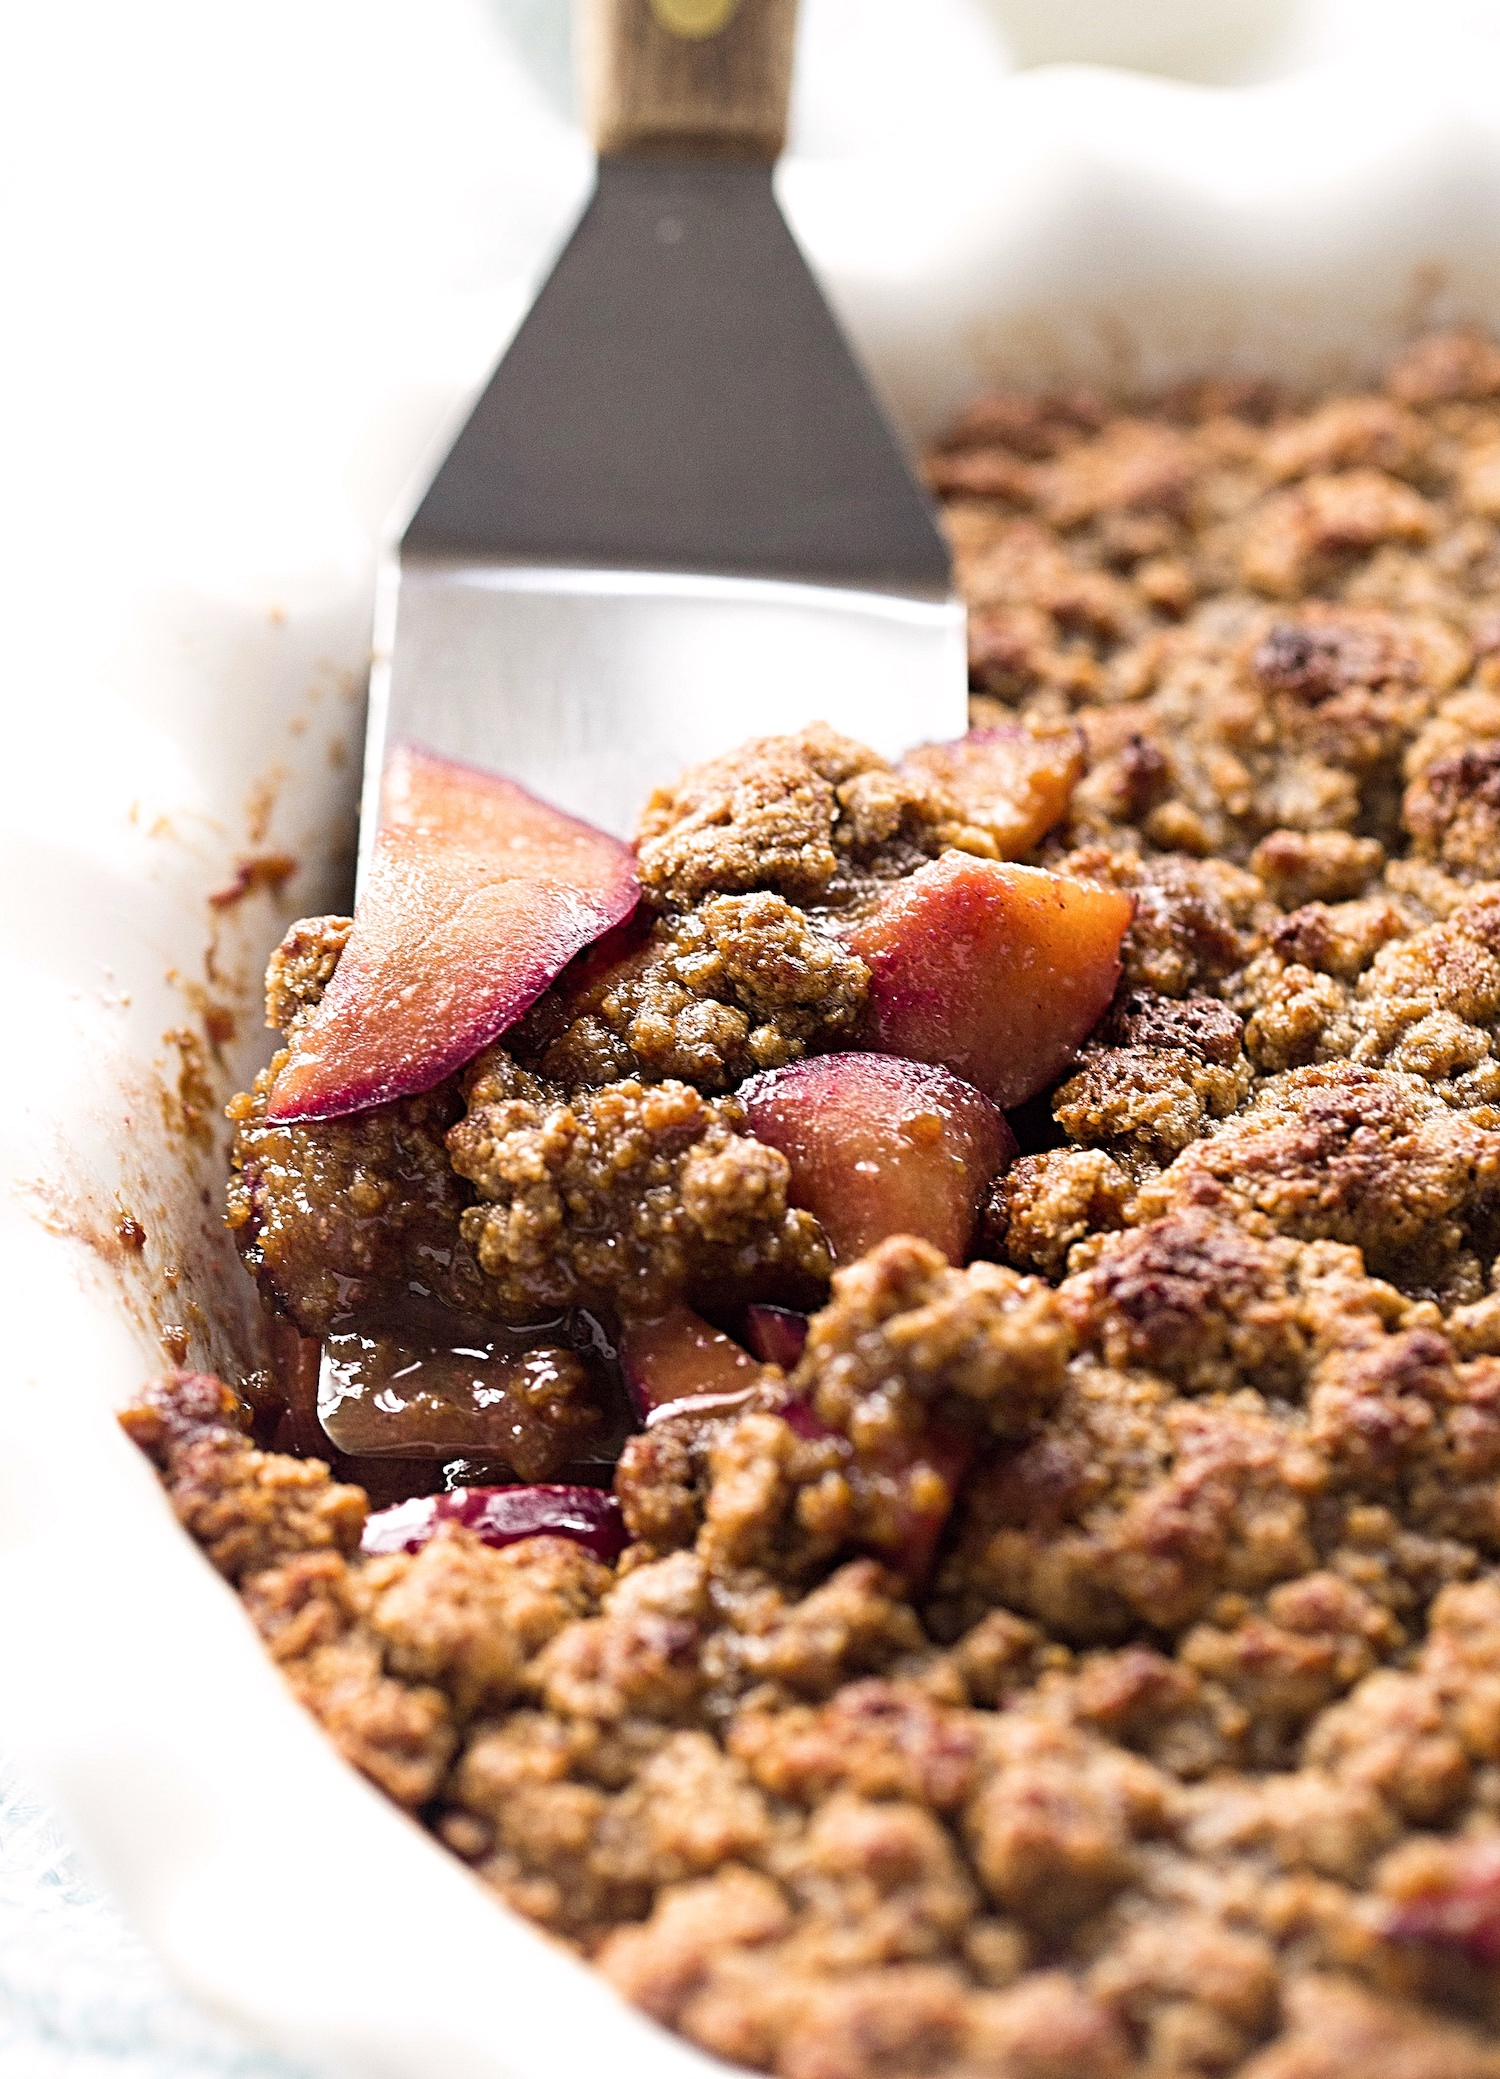 Gluten-Free Plum Tahini Crumble: tart, juicy plums topped with addictive, flourless tahini cookie crumbles. Dairy-free and delicious! | TrufflesandTrends.com